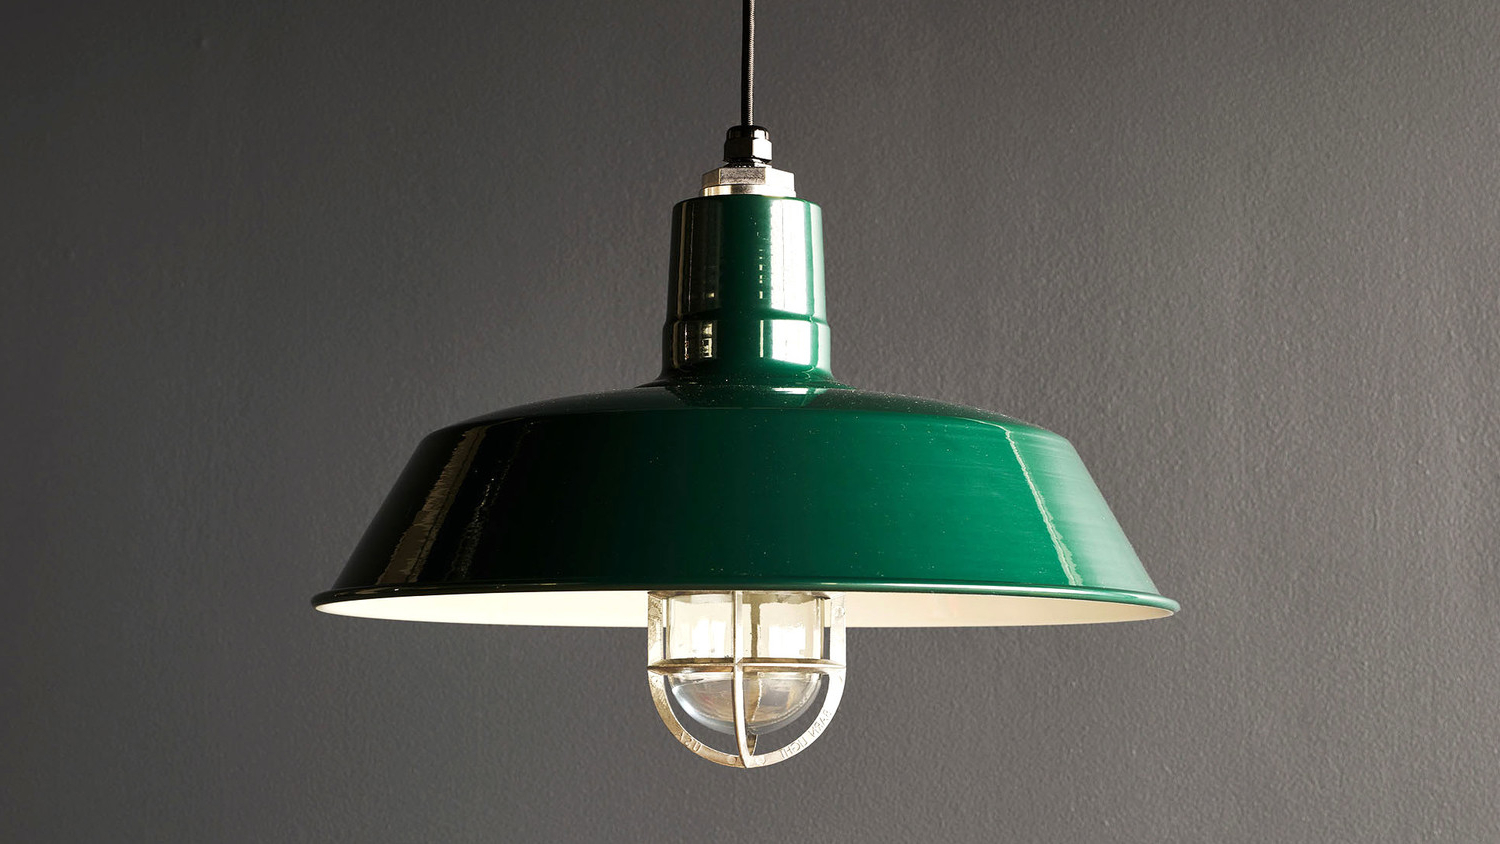 Most Recent Erico 1 Light Single Bell Pendants Throughout New Savings On Erico 1 Light Single Bell Pendant (View 15 of 20)